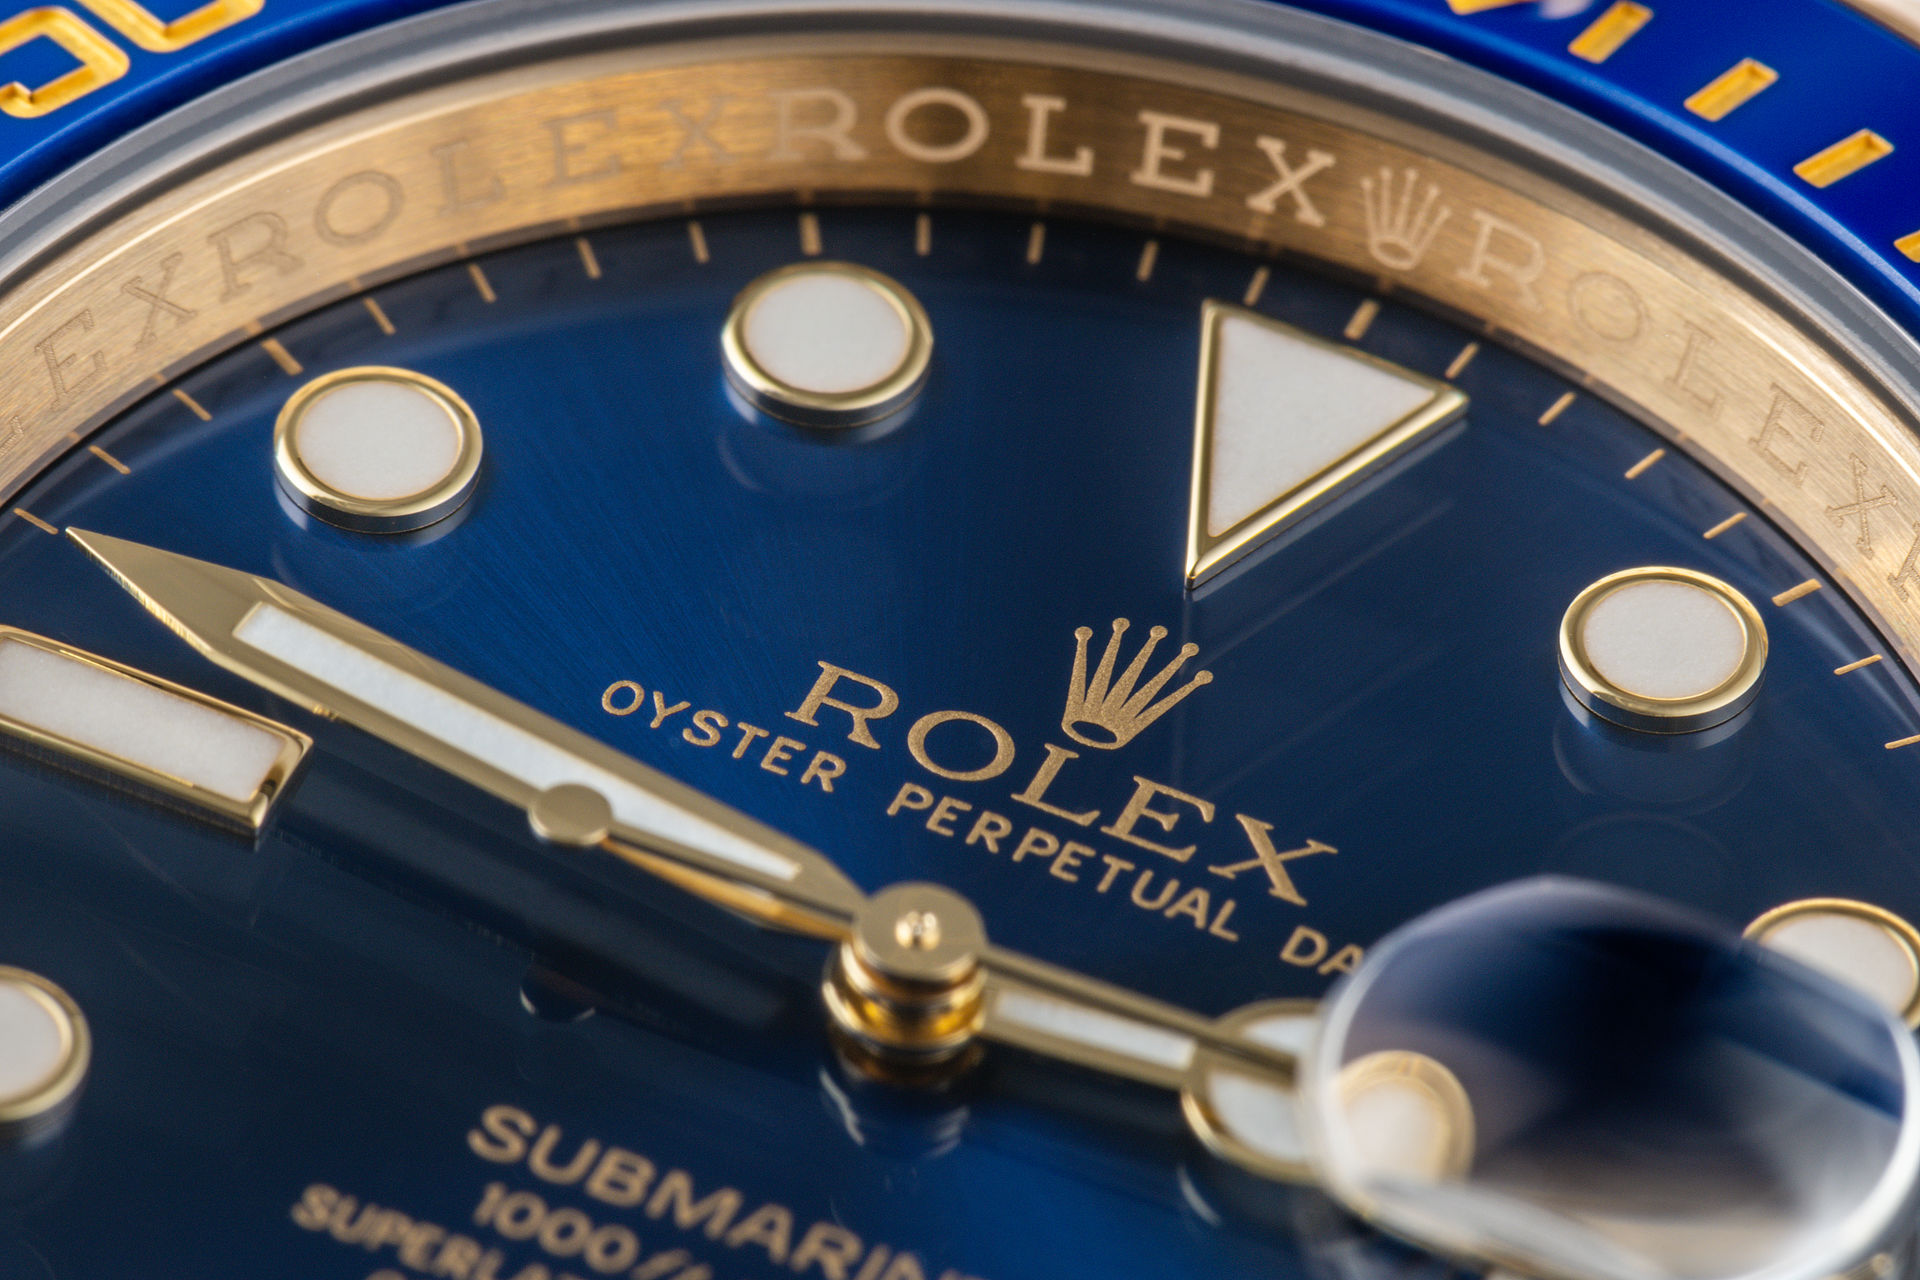 ref 116618LB | Unworn 'Rolex 5 Year Warranty' | Rolex Submariner Date